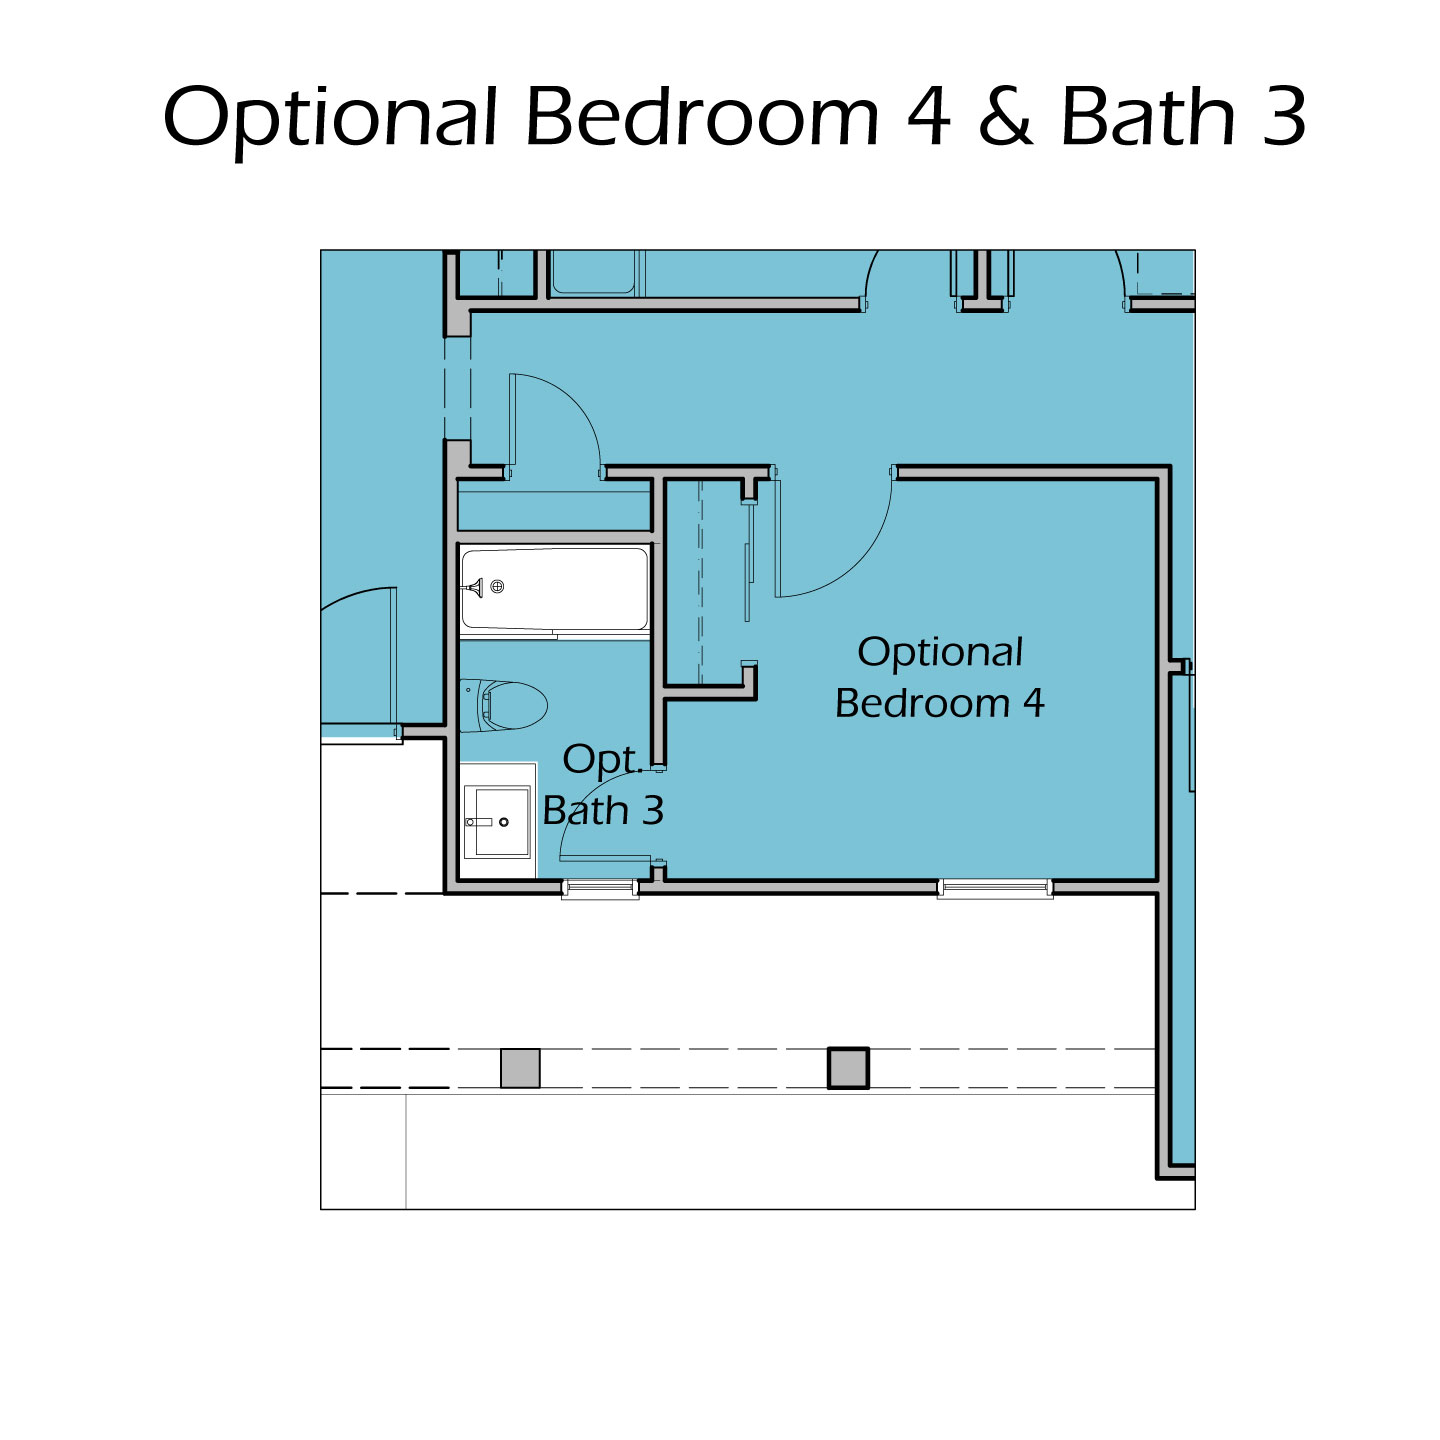 Heartland Plan TC1 Optional Bedroom 4